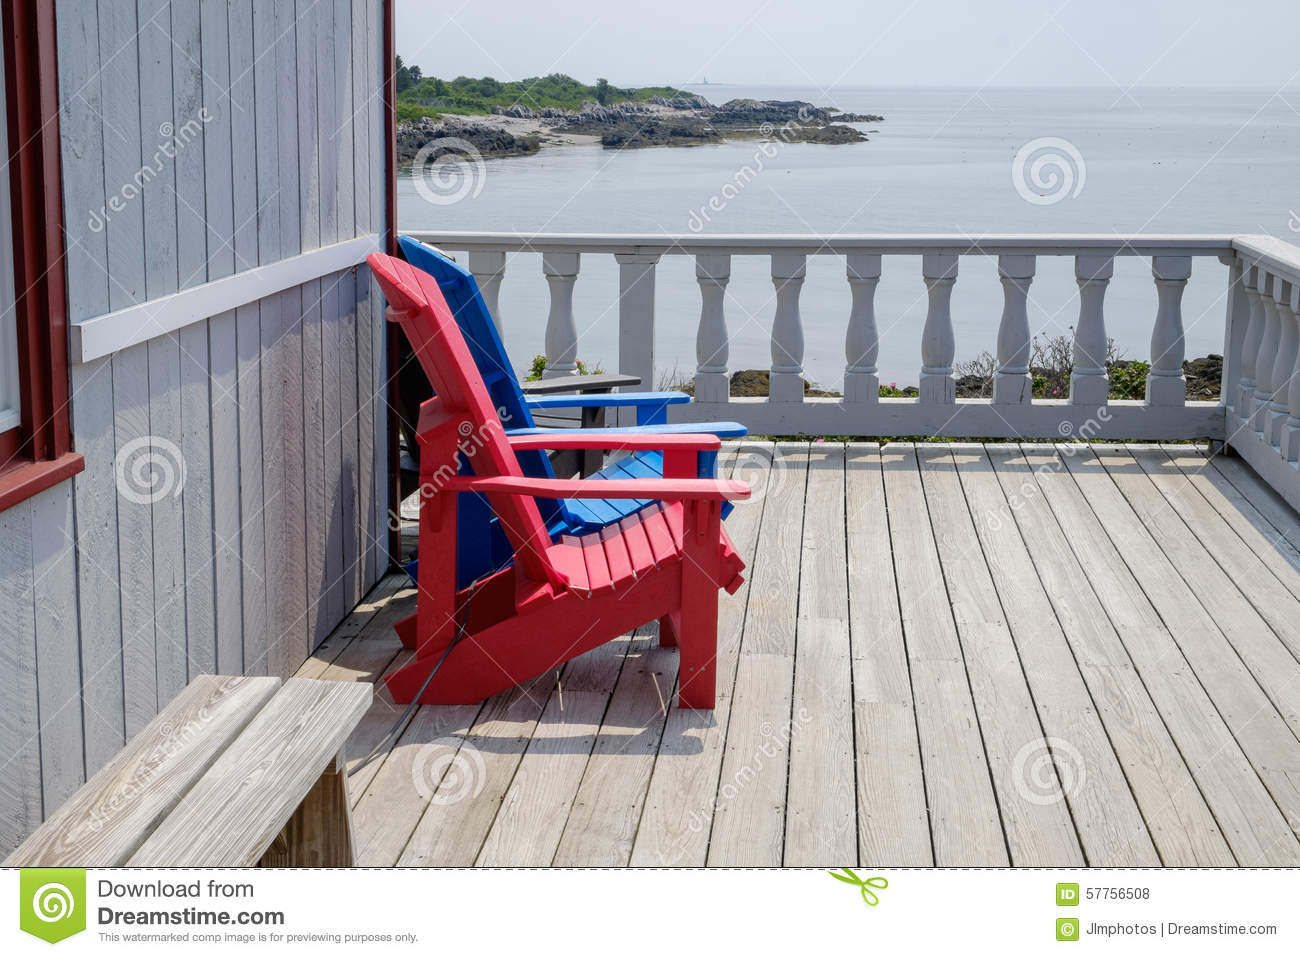 Colorful Wooden Chairs Colorful Adirondack Deck And Beach Chairs In Bright Red